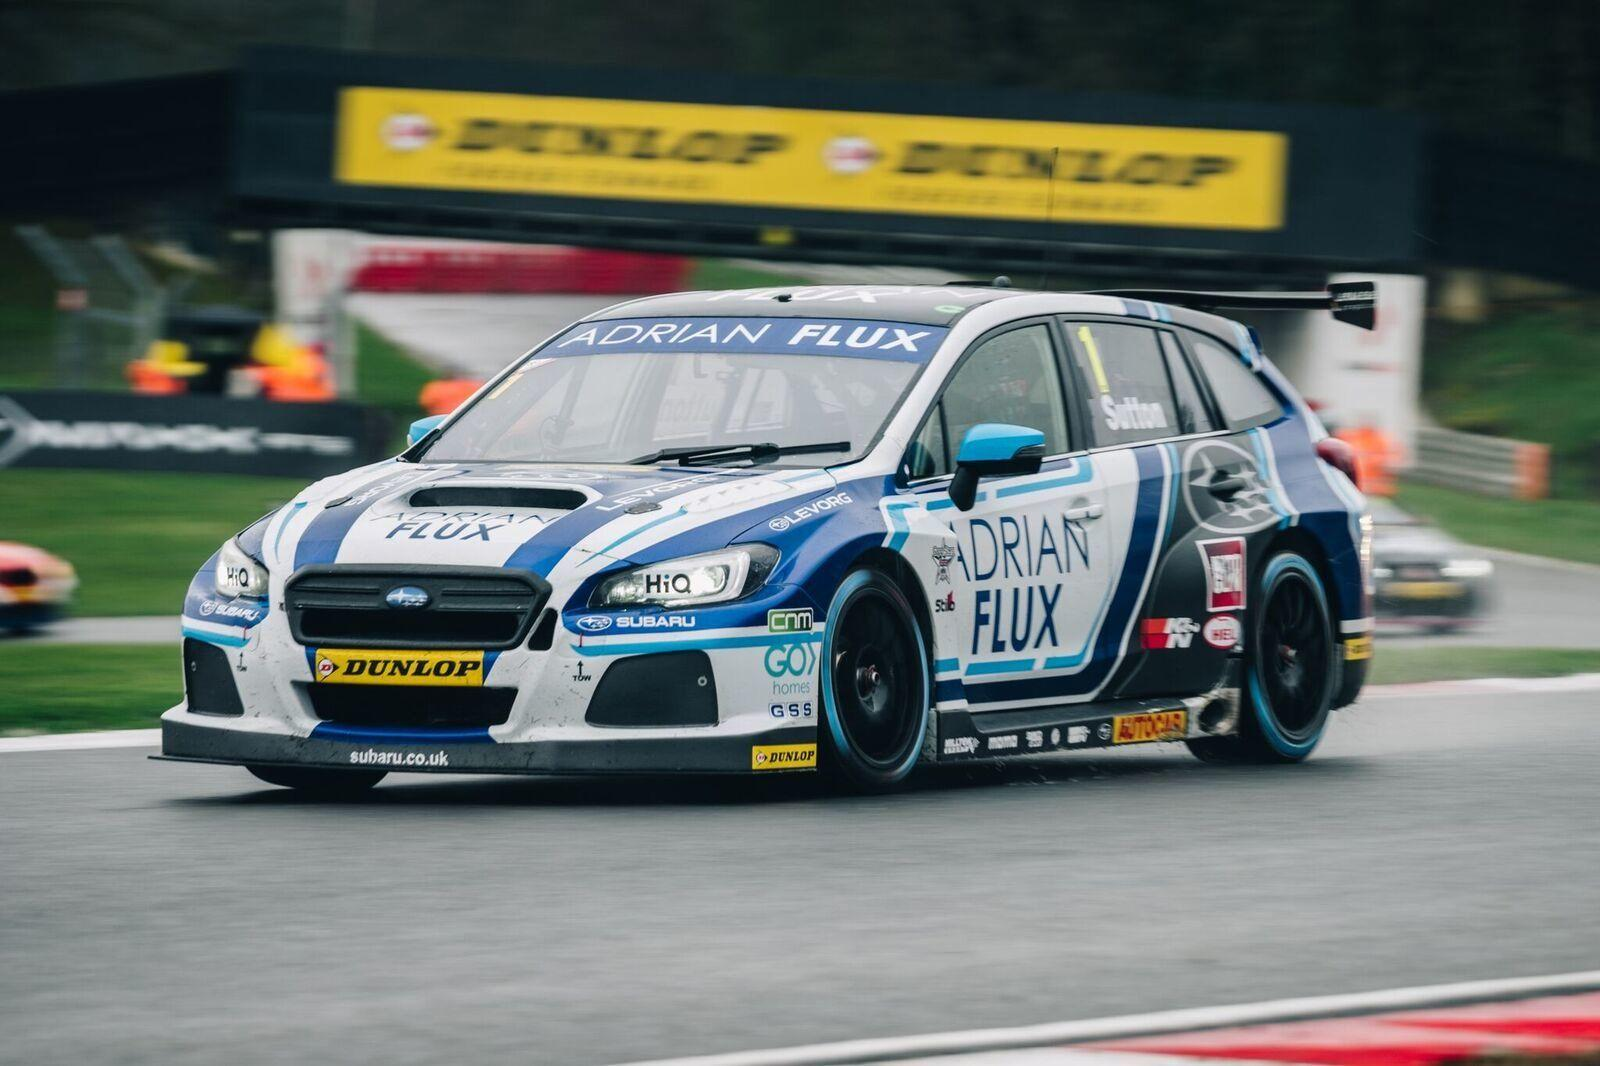 A POSITIVE START TO THE SEASON FOR TEAM BMR